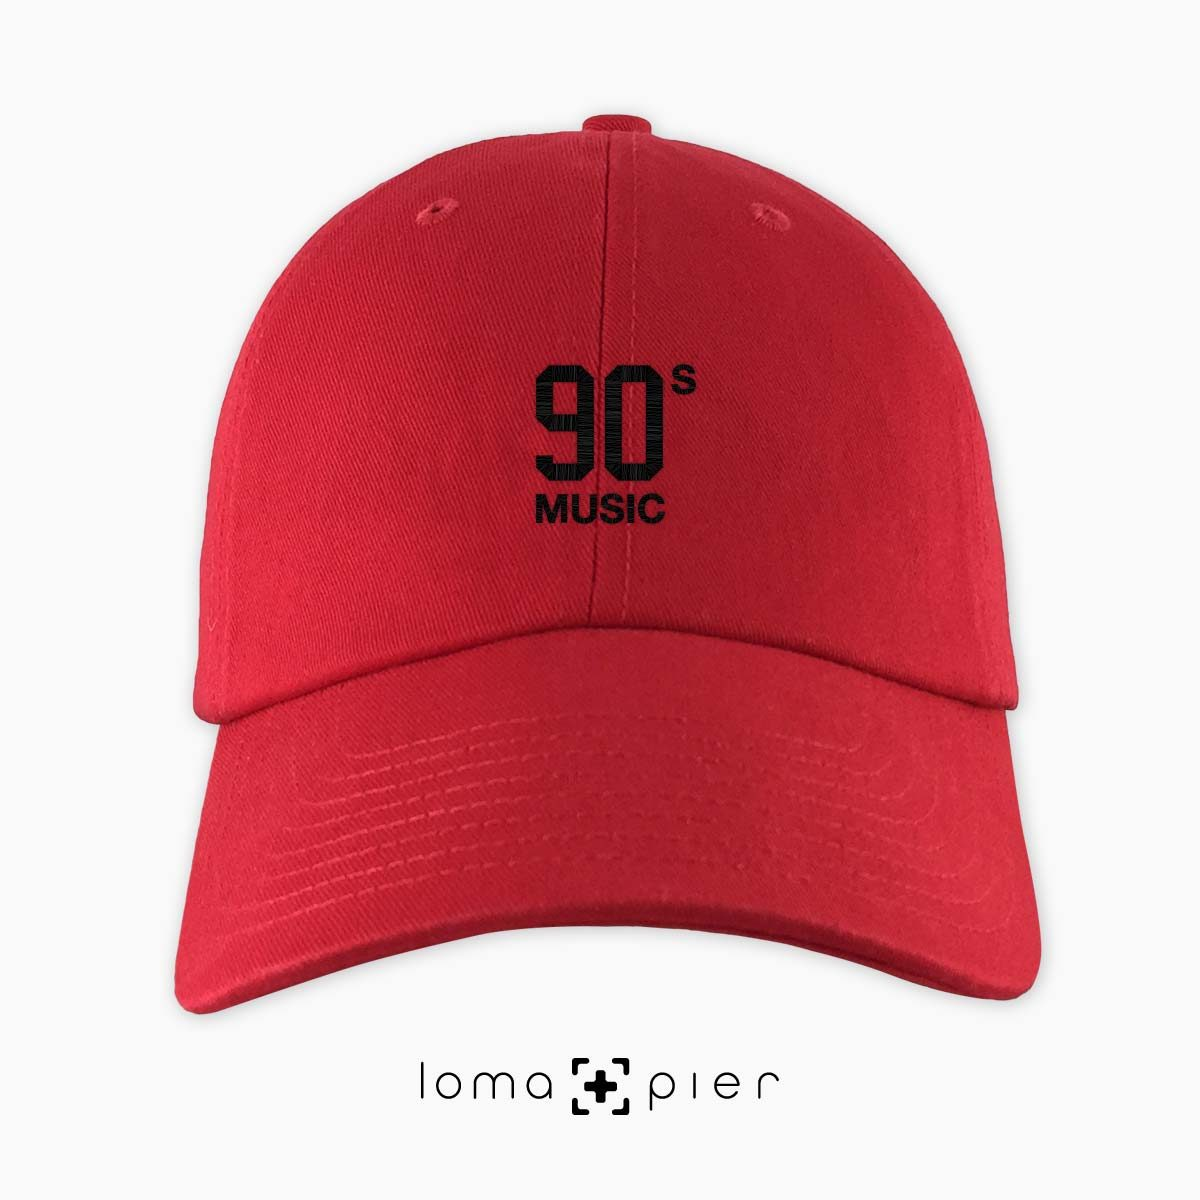 90's MUSIC typography embroidered on a red unstructured dad hat with black thread by loma+pier hat store made in the USA